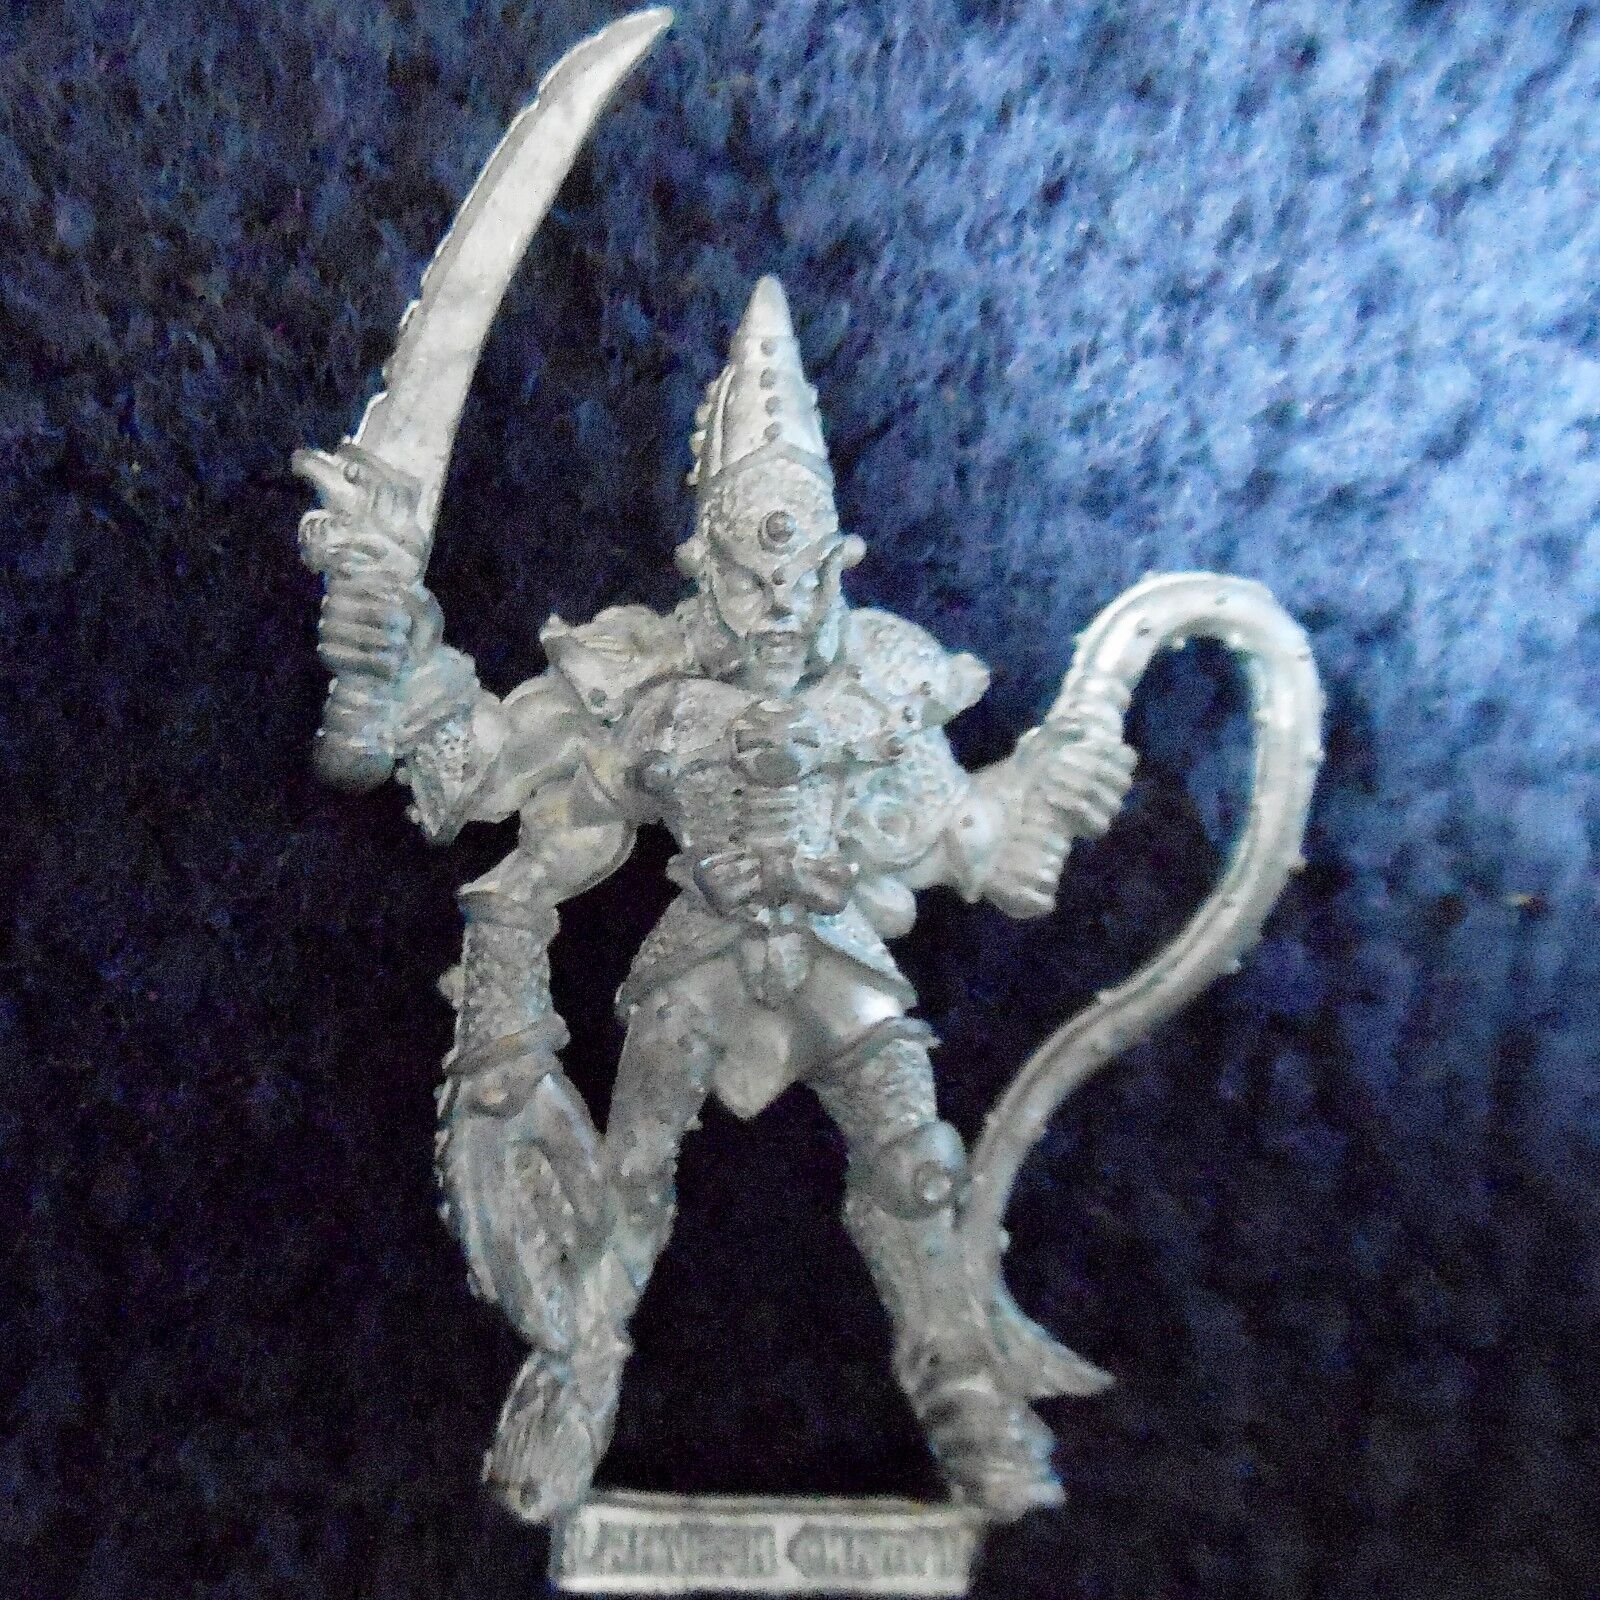 1988 Chaos Champion of Slaanesh 0218 18 Citadel Warhammer Army Hordes Fighter GW